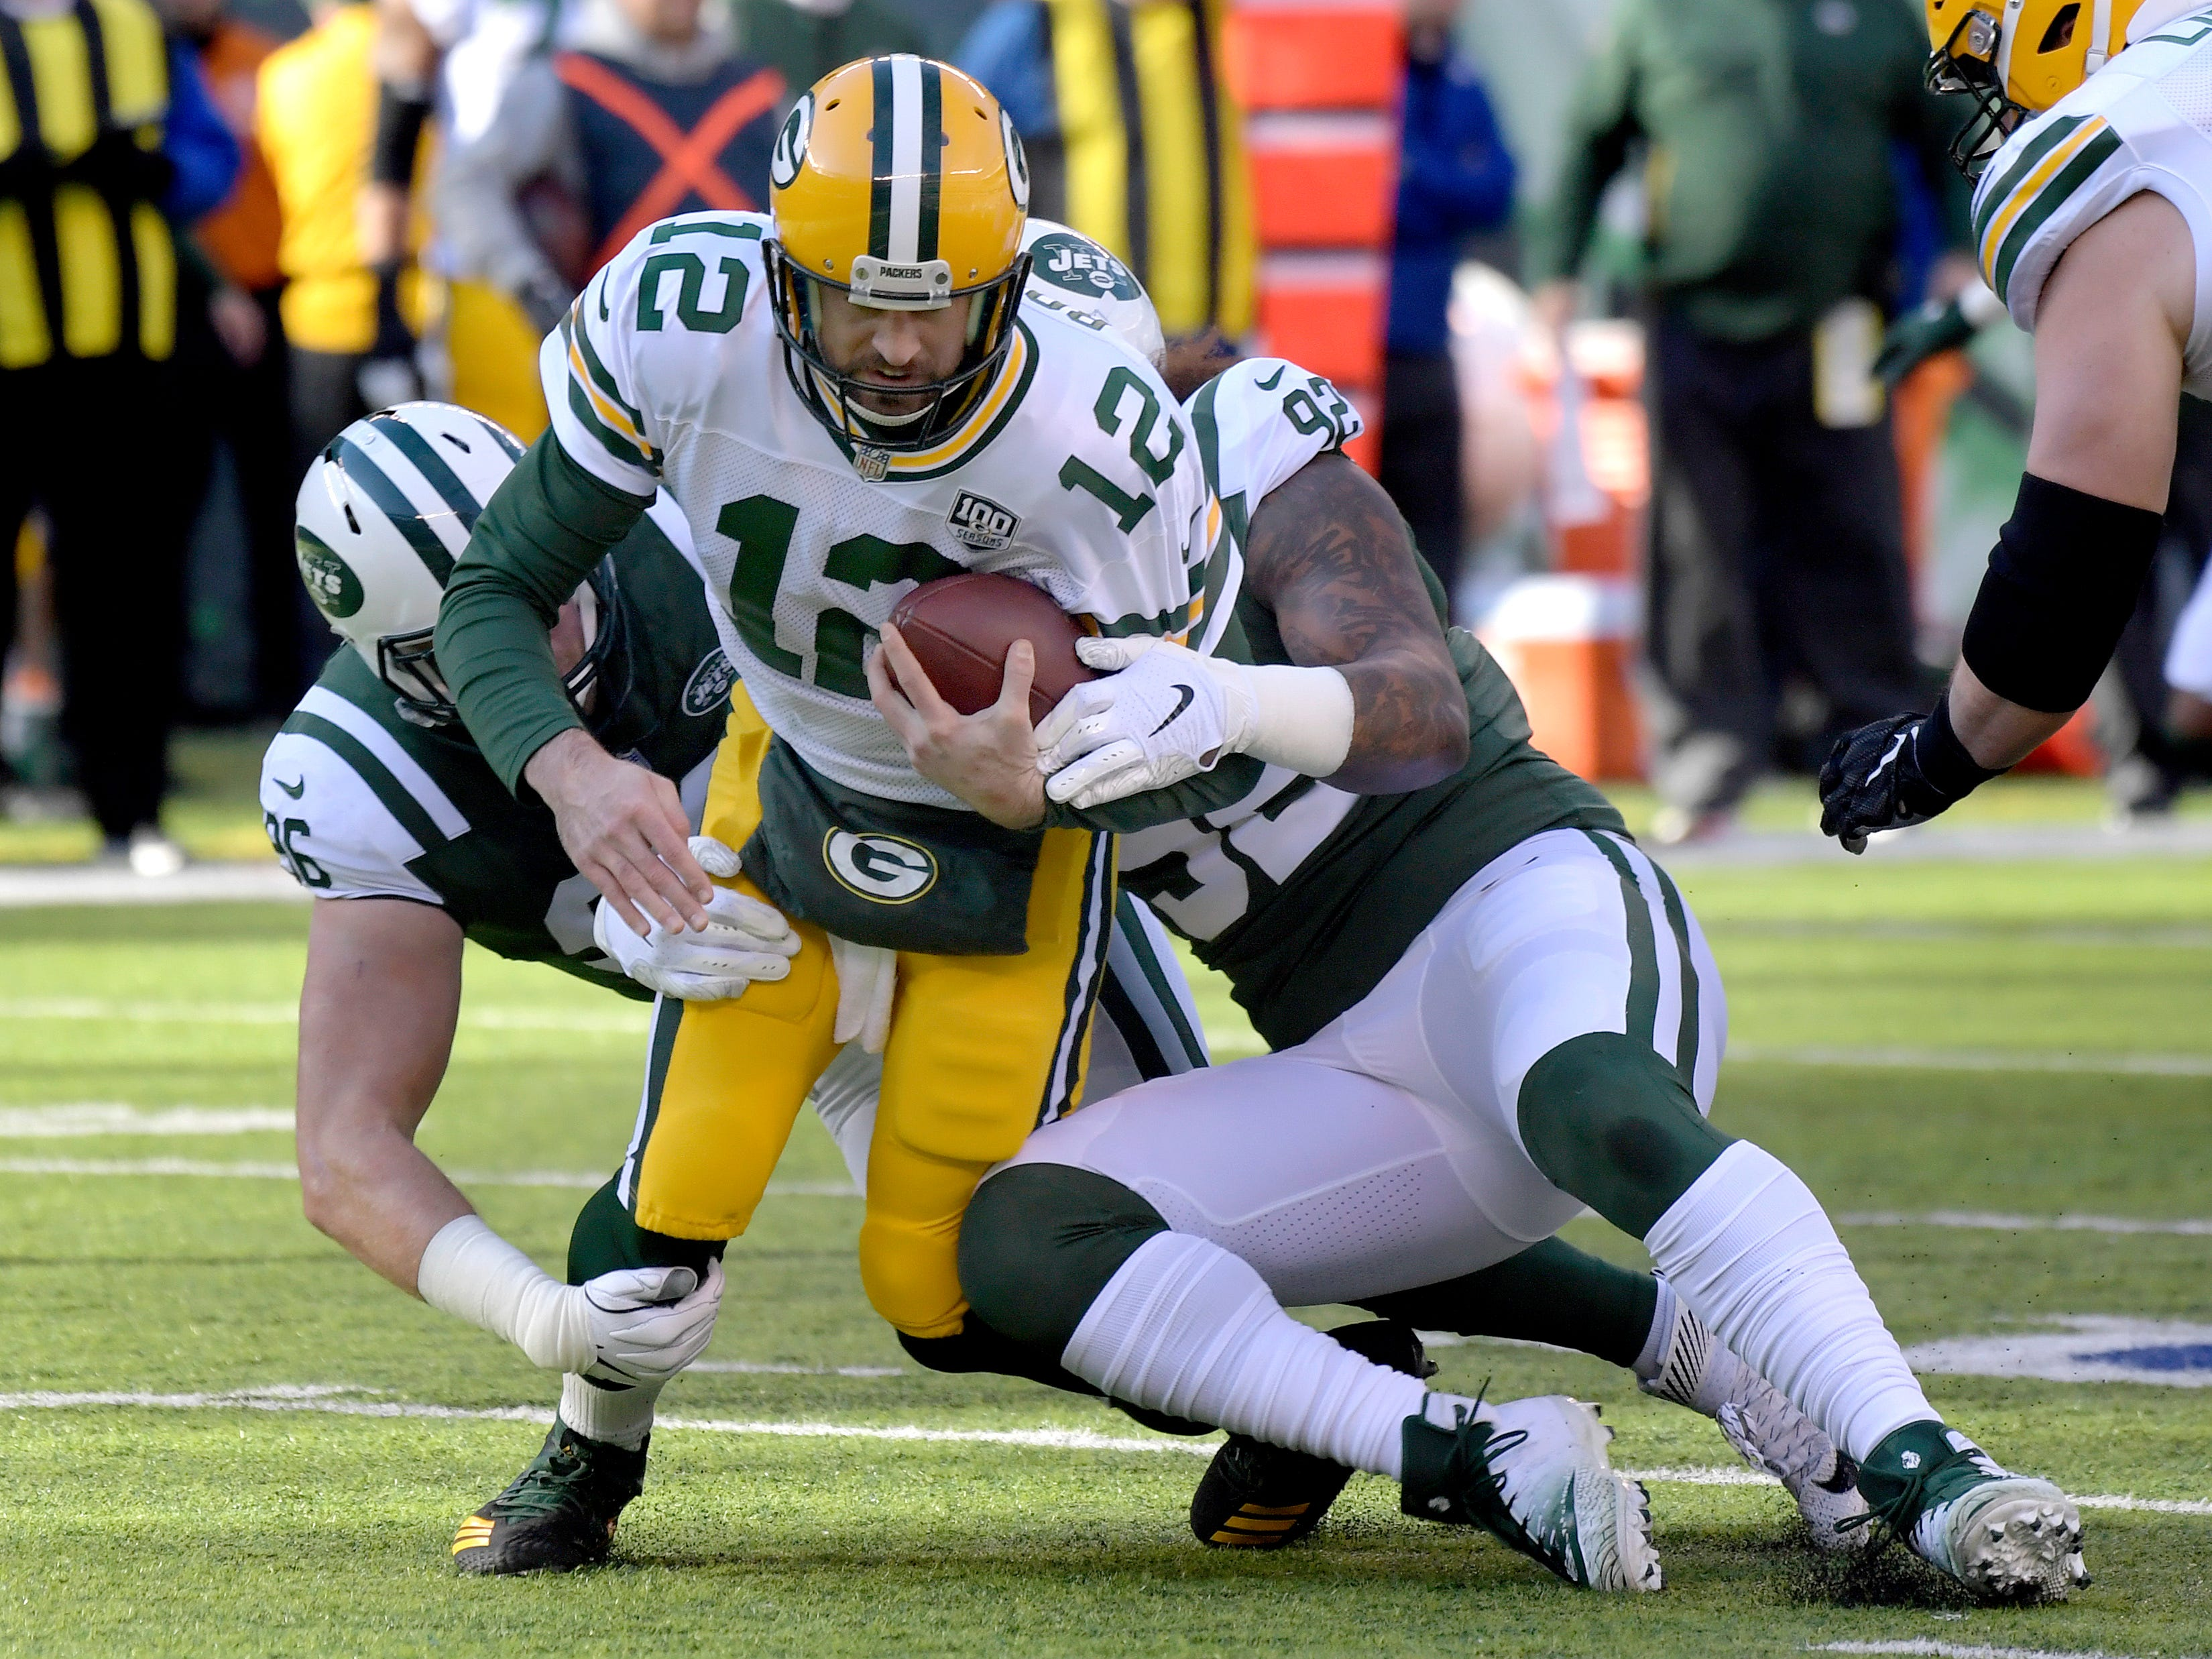 Green Bay Packers quarterback Aaron Rodgers (12) is sacked by New York Jets defensive end Henry Anderson, left, and defensive end Leonard Williams during the first half of an NFL football game, Sunday, Dec. 23, 2018, in East Rutherford, N.J.